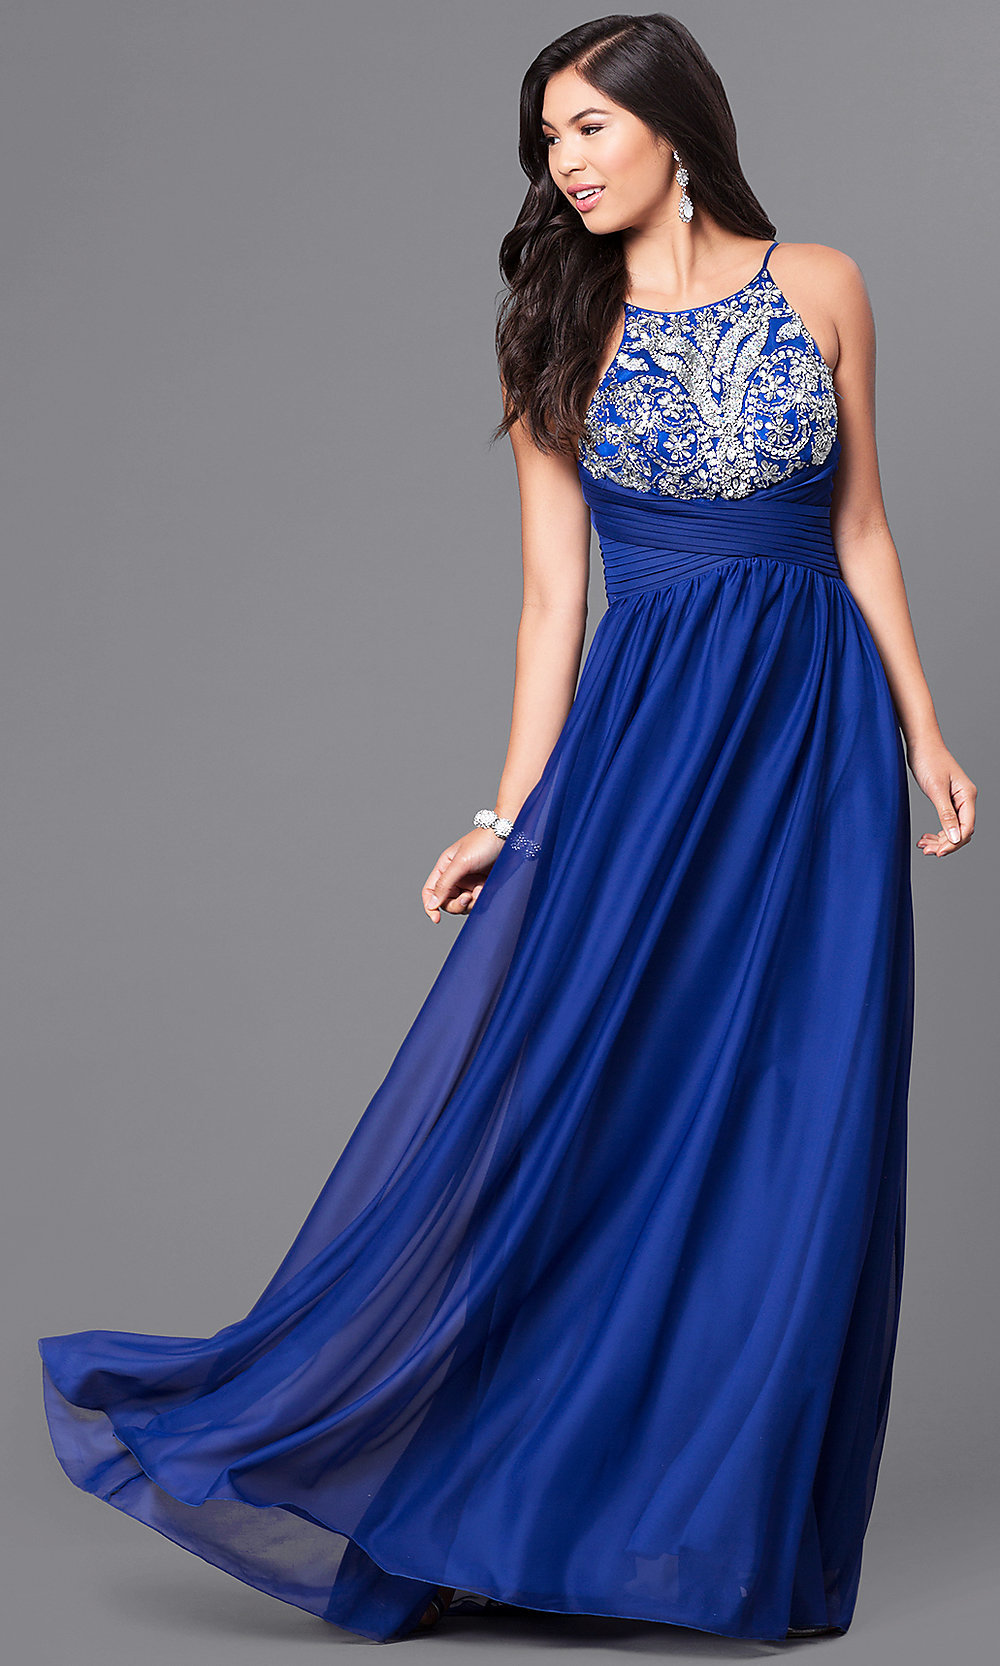 Long Pleated Royal Blue Prom Dress - PromGirl